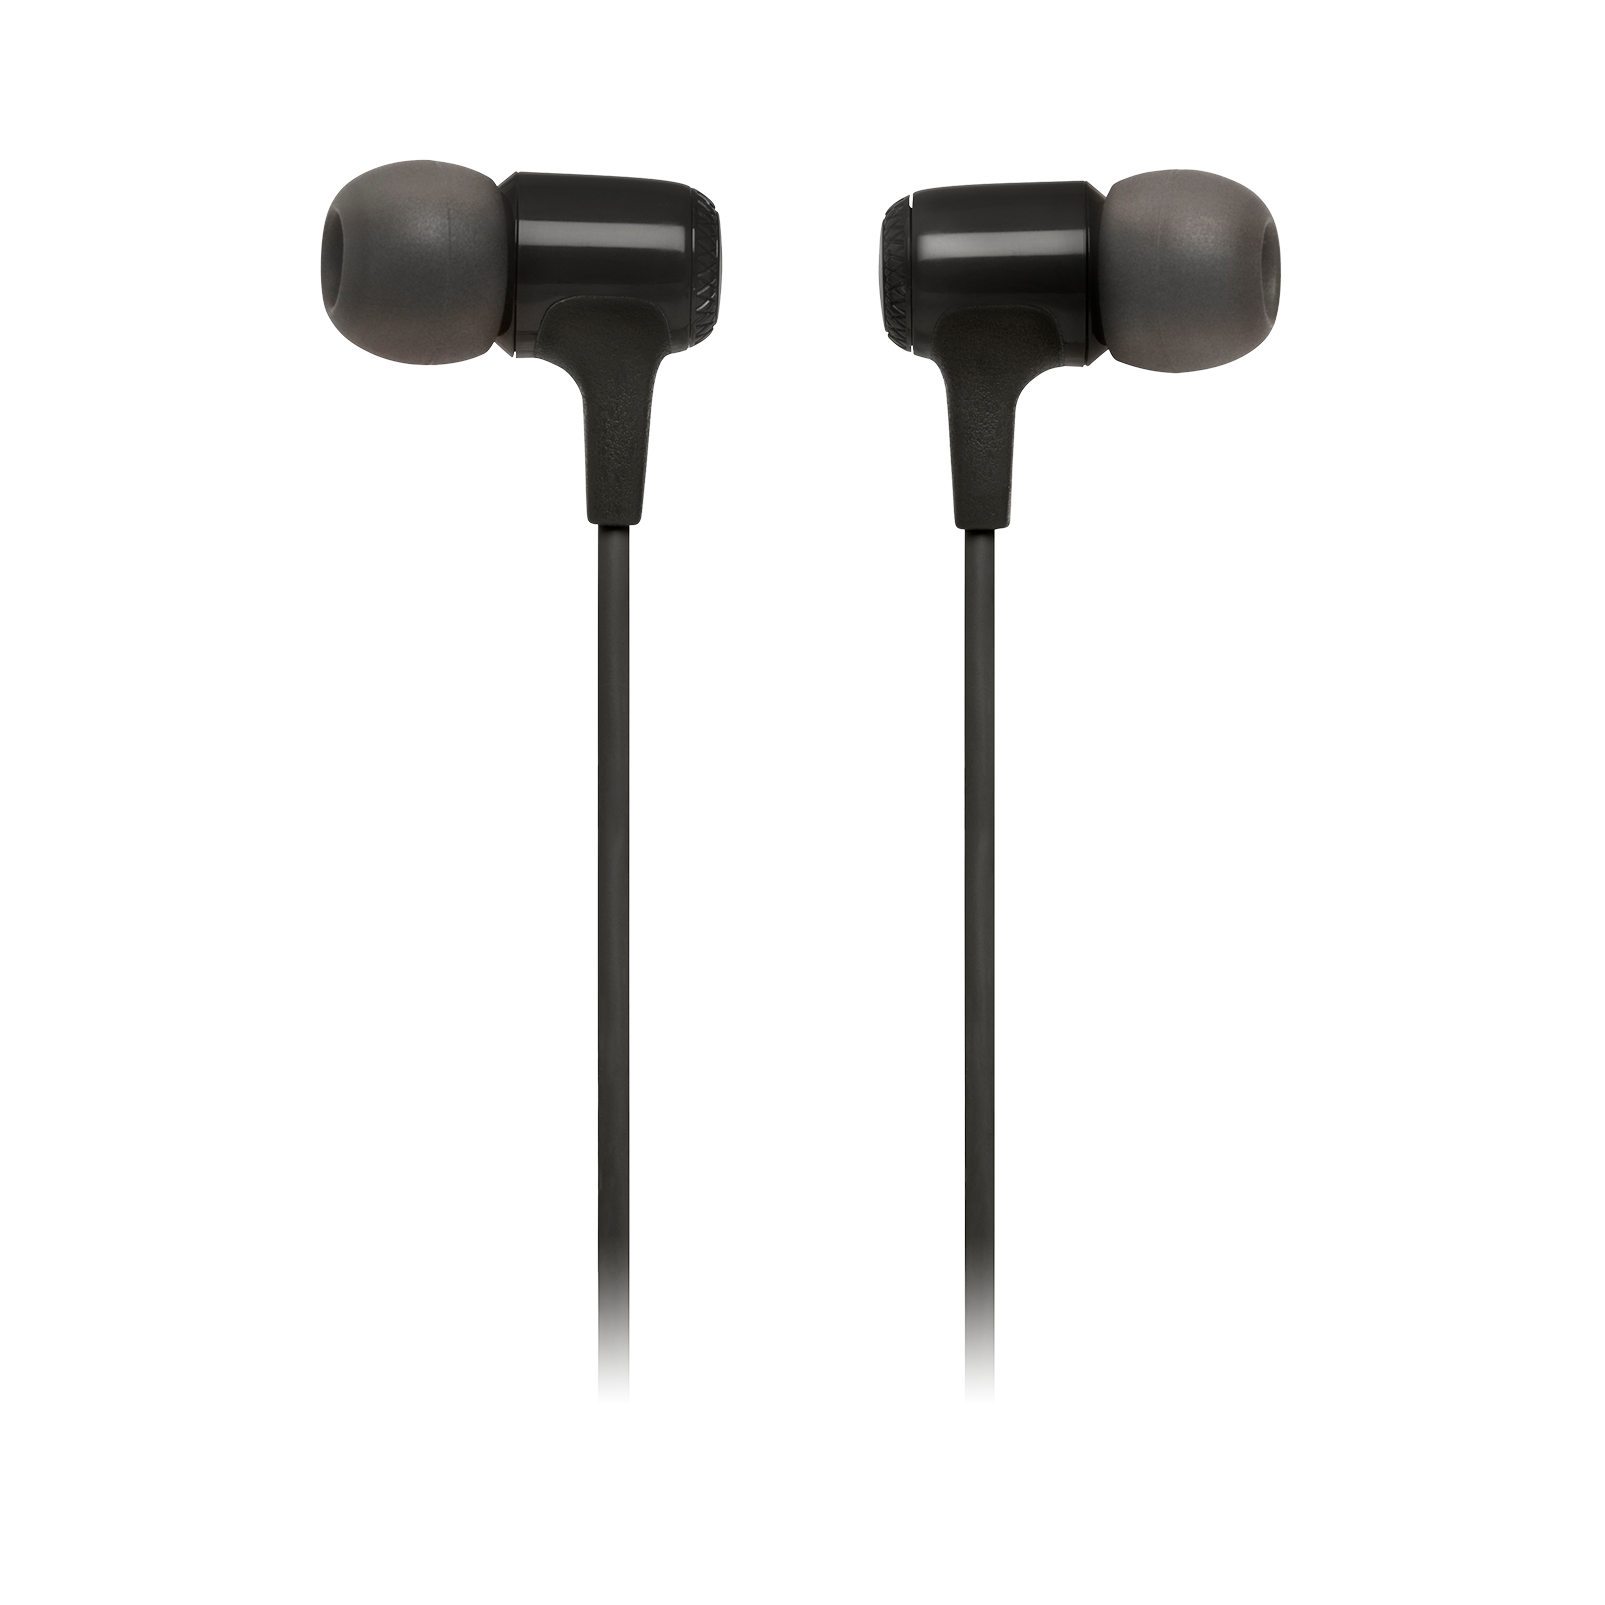 E15 In Ear Headphones Headphone With Volume Control Wiring Diagram Get Free Image About